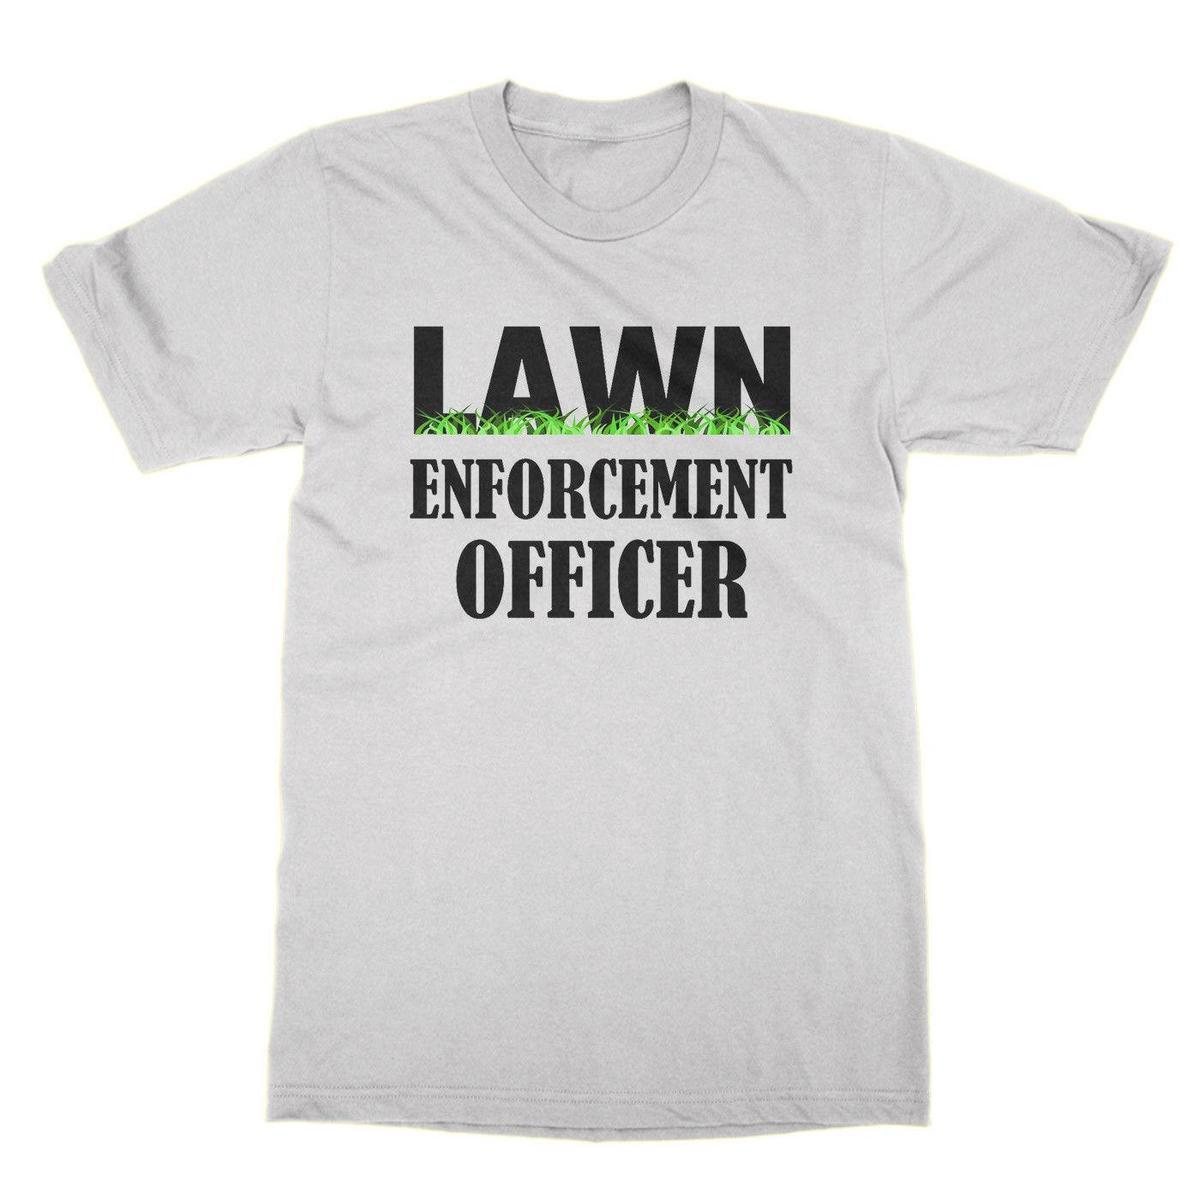 cf74bb22 Lawn Enforcement Officer Unisex T Shirt Funny Gardening Gardner Shirt T  Shirt Designer Graphic T Shirts From Lefan06, $14.67| DHgate.Com